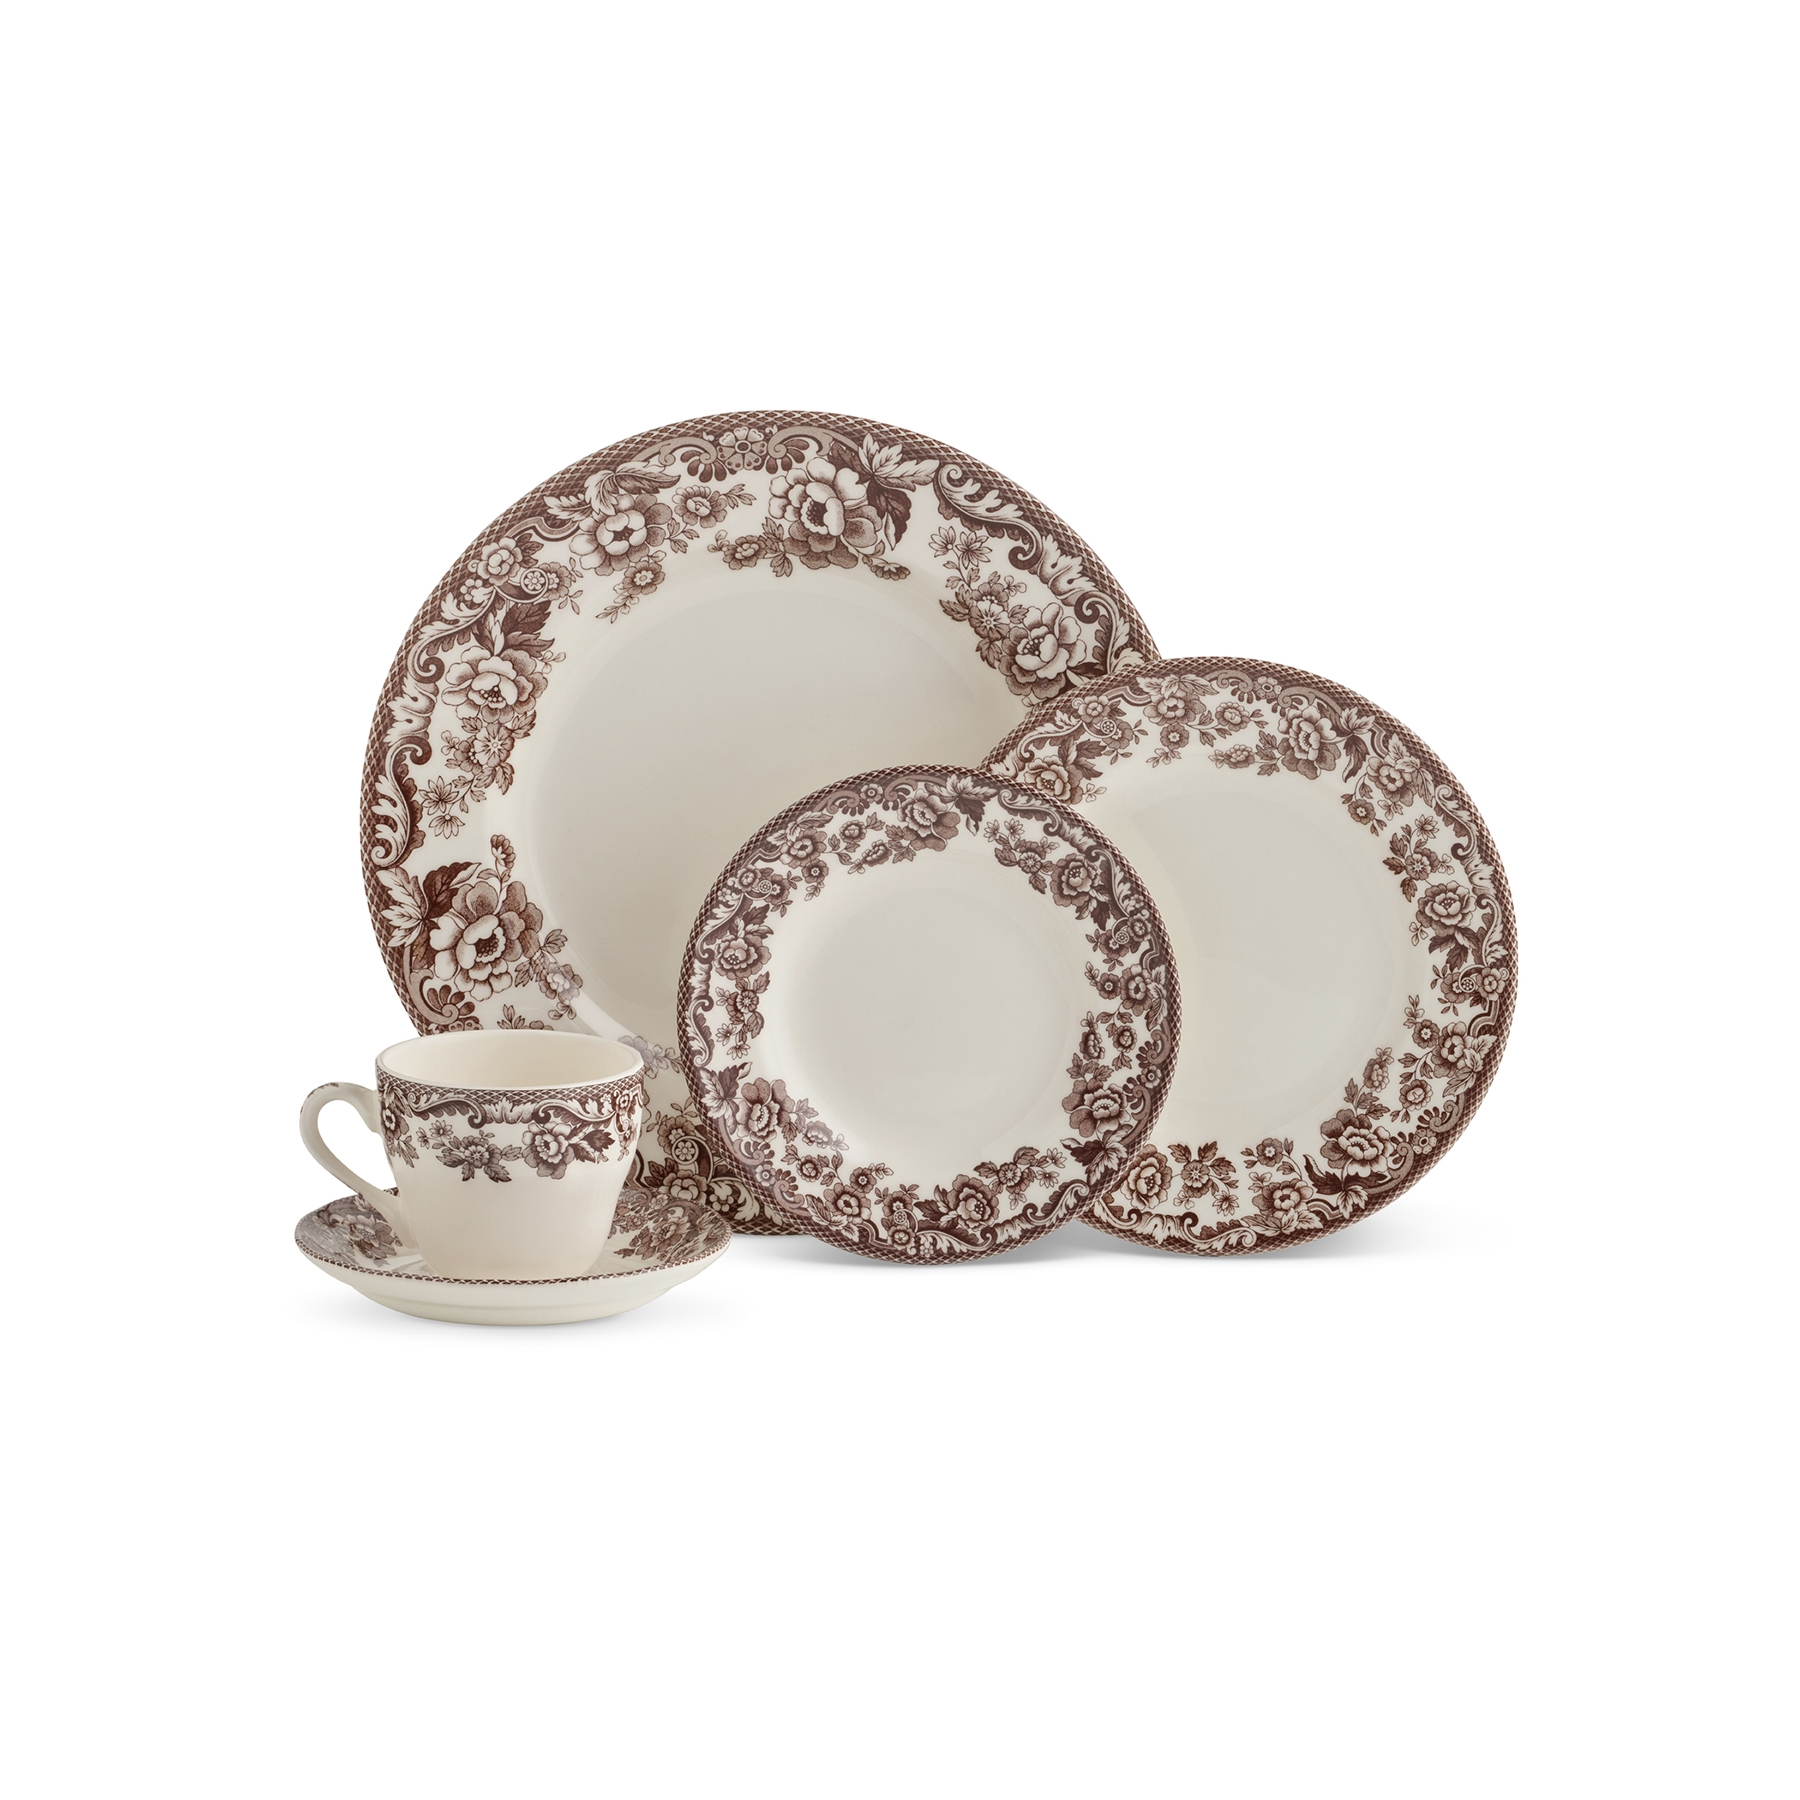 Spode Delamere 5-piece Place Setting image number 0